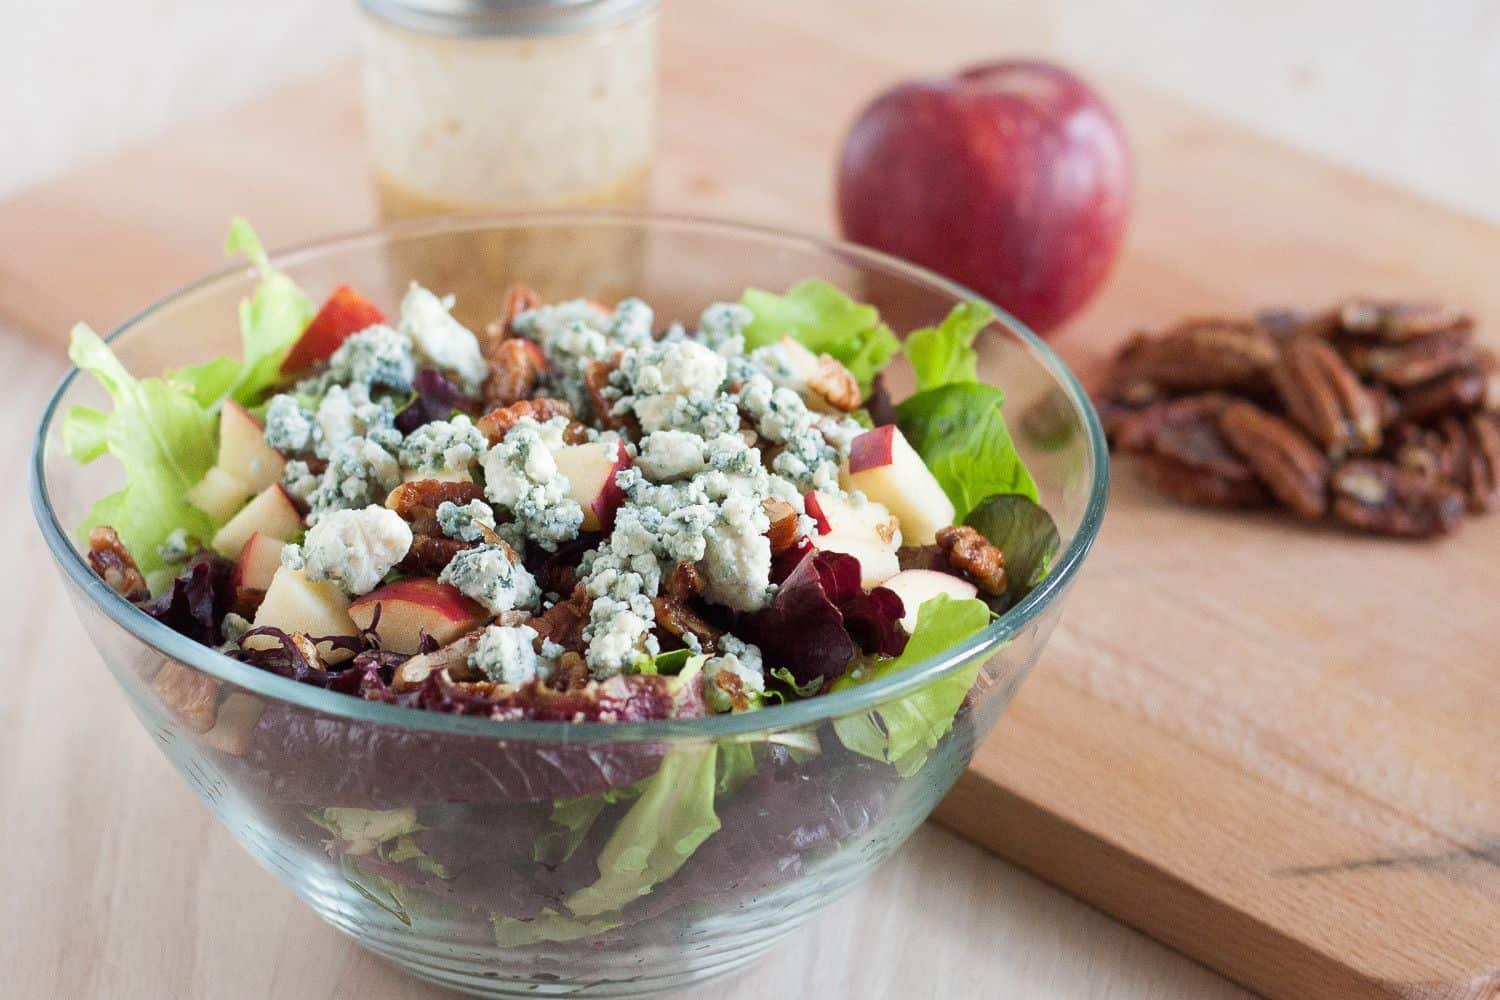 This salad is perfect for fall! Blue cheese crumbles, quick candied pecans, fresh apples, dark leafy greens, and an easy red wine vinaigrette. It's healthy fall comfort food!